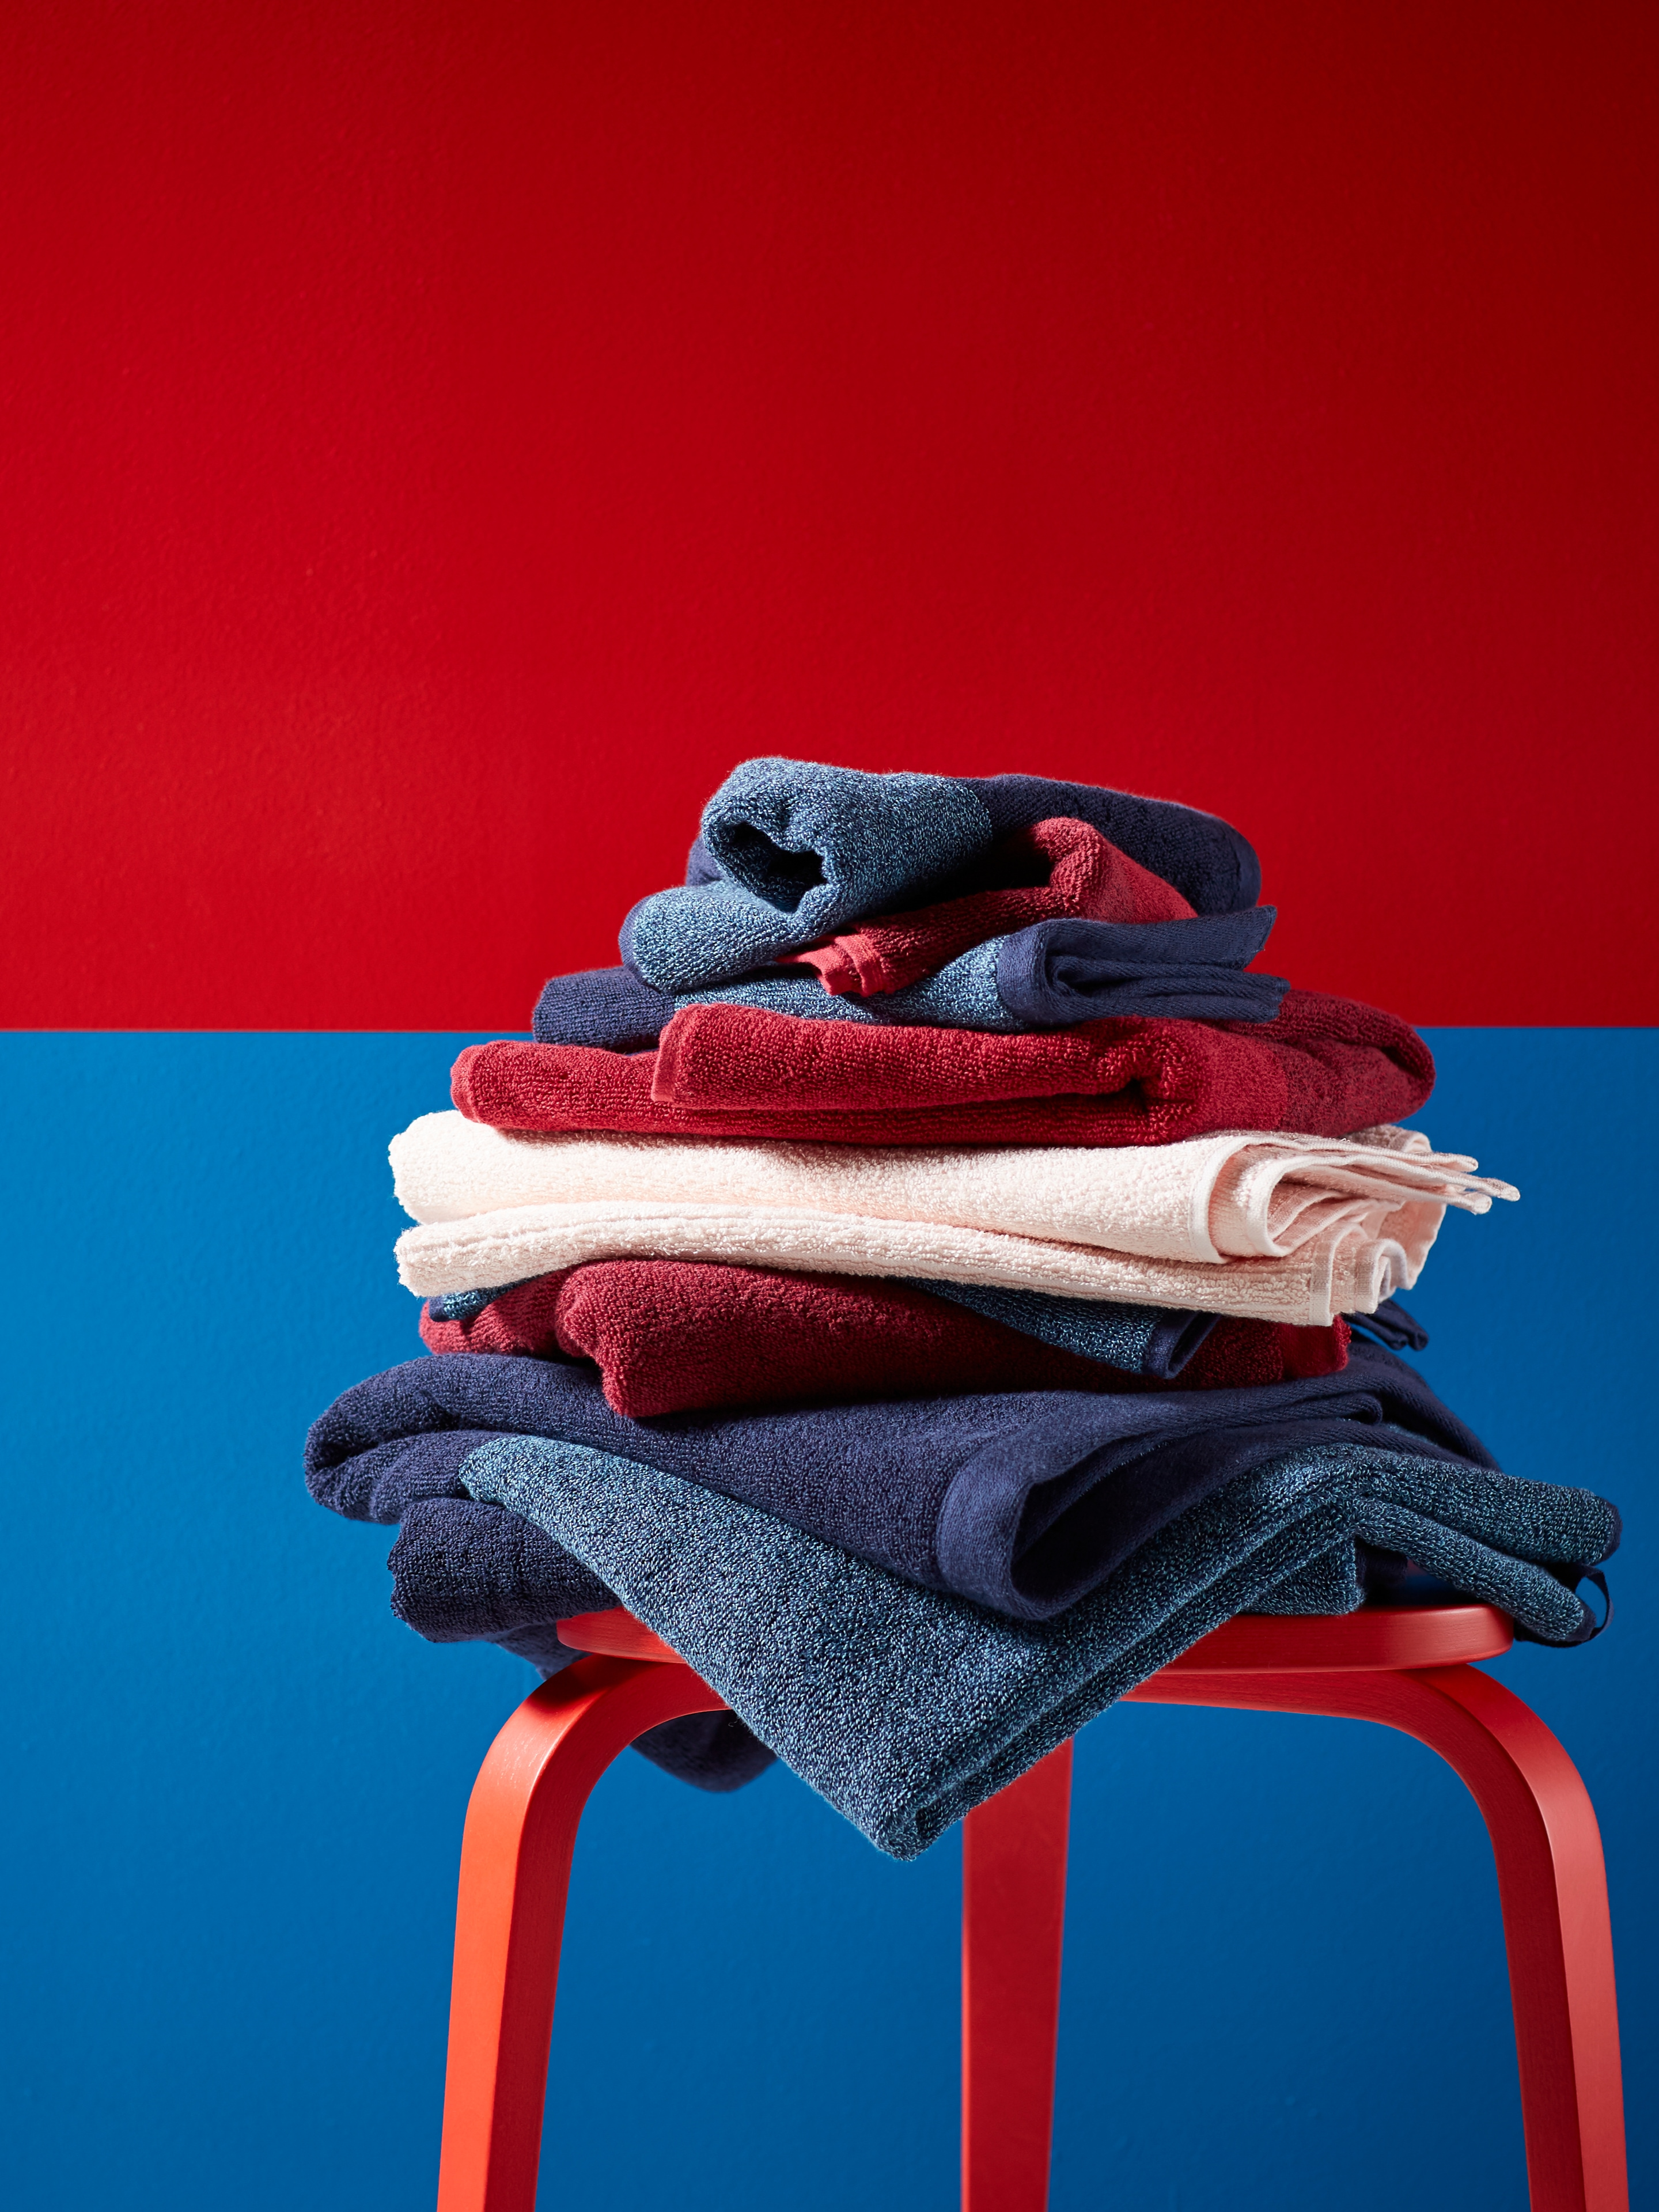 A selection of HIMLEÅN bath towels of different colors, stacked on a red wooden stool against a blue and red background.